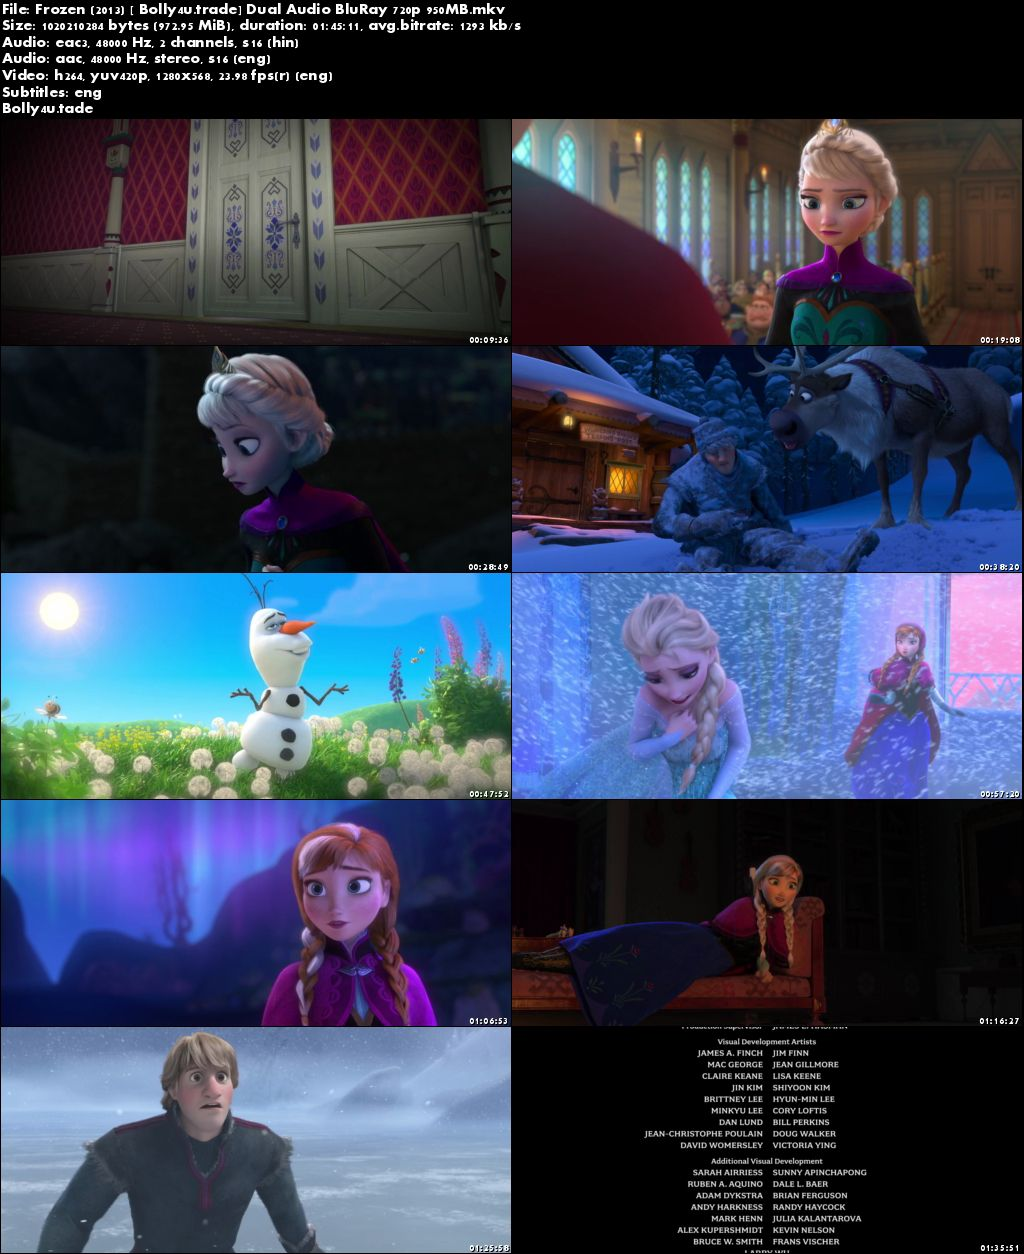 Frozen 2013 bluray 350mb full hindi dual audio movie download 480p frozen 2013 bluray 350mb full hindi dual audio movie download 480p ccuart Gallery